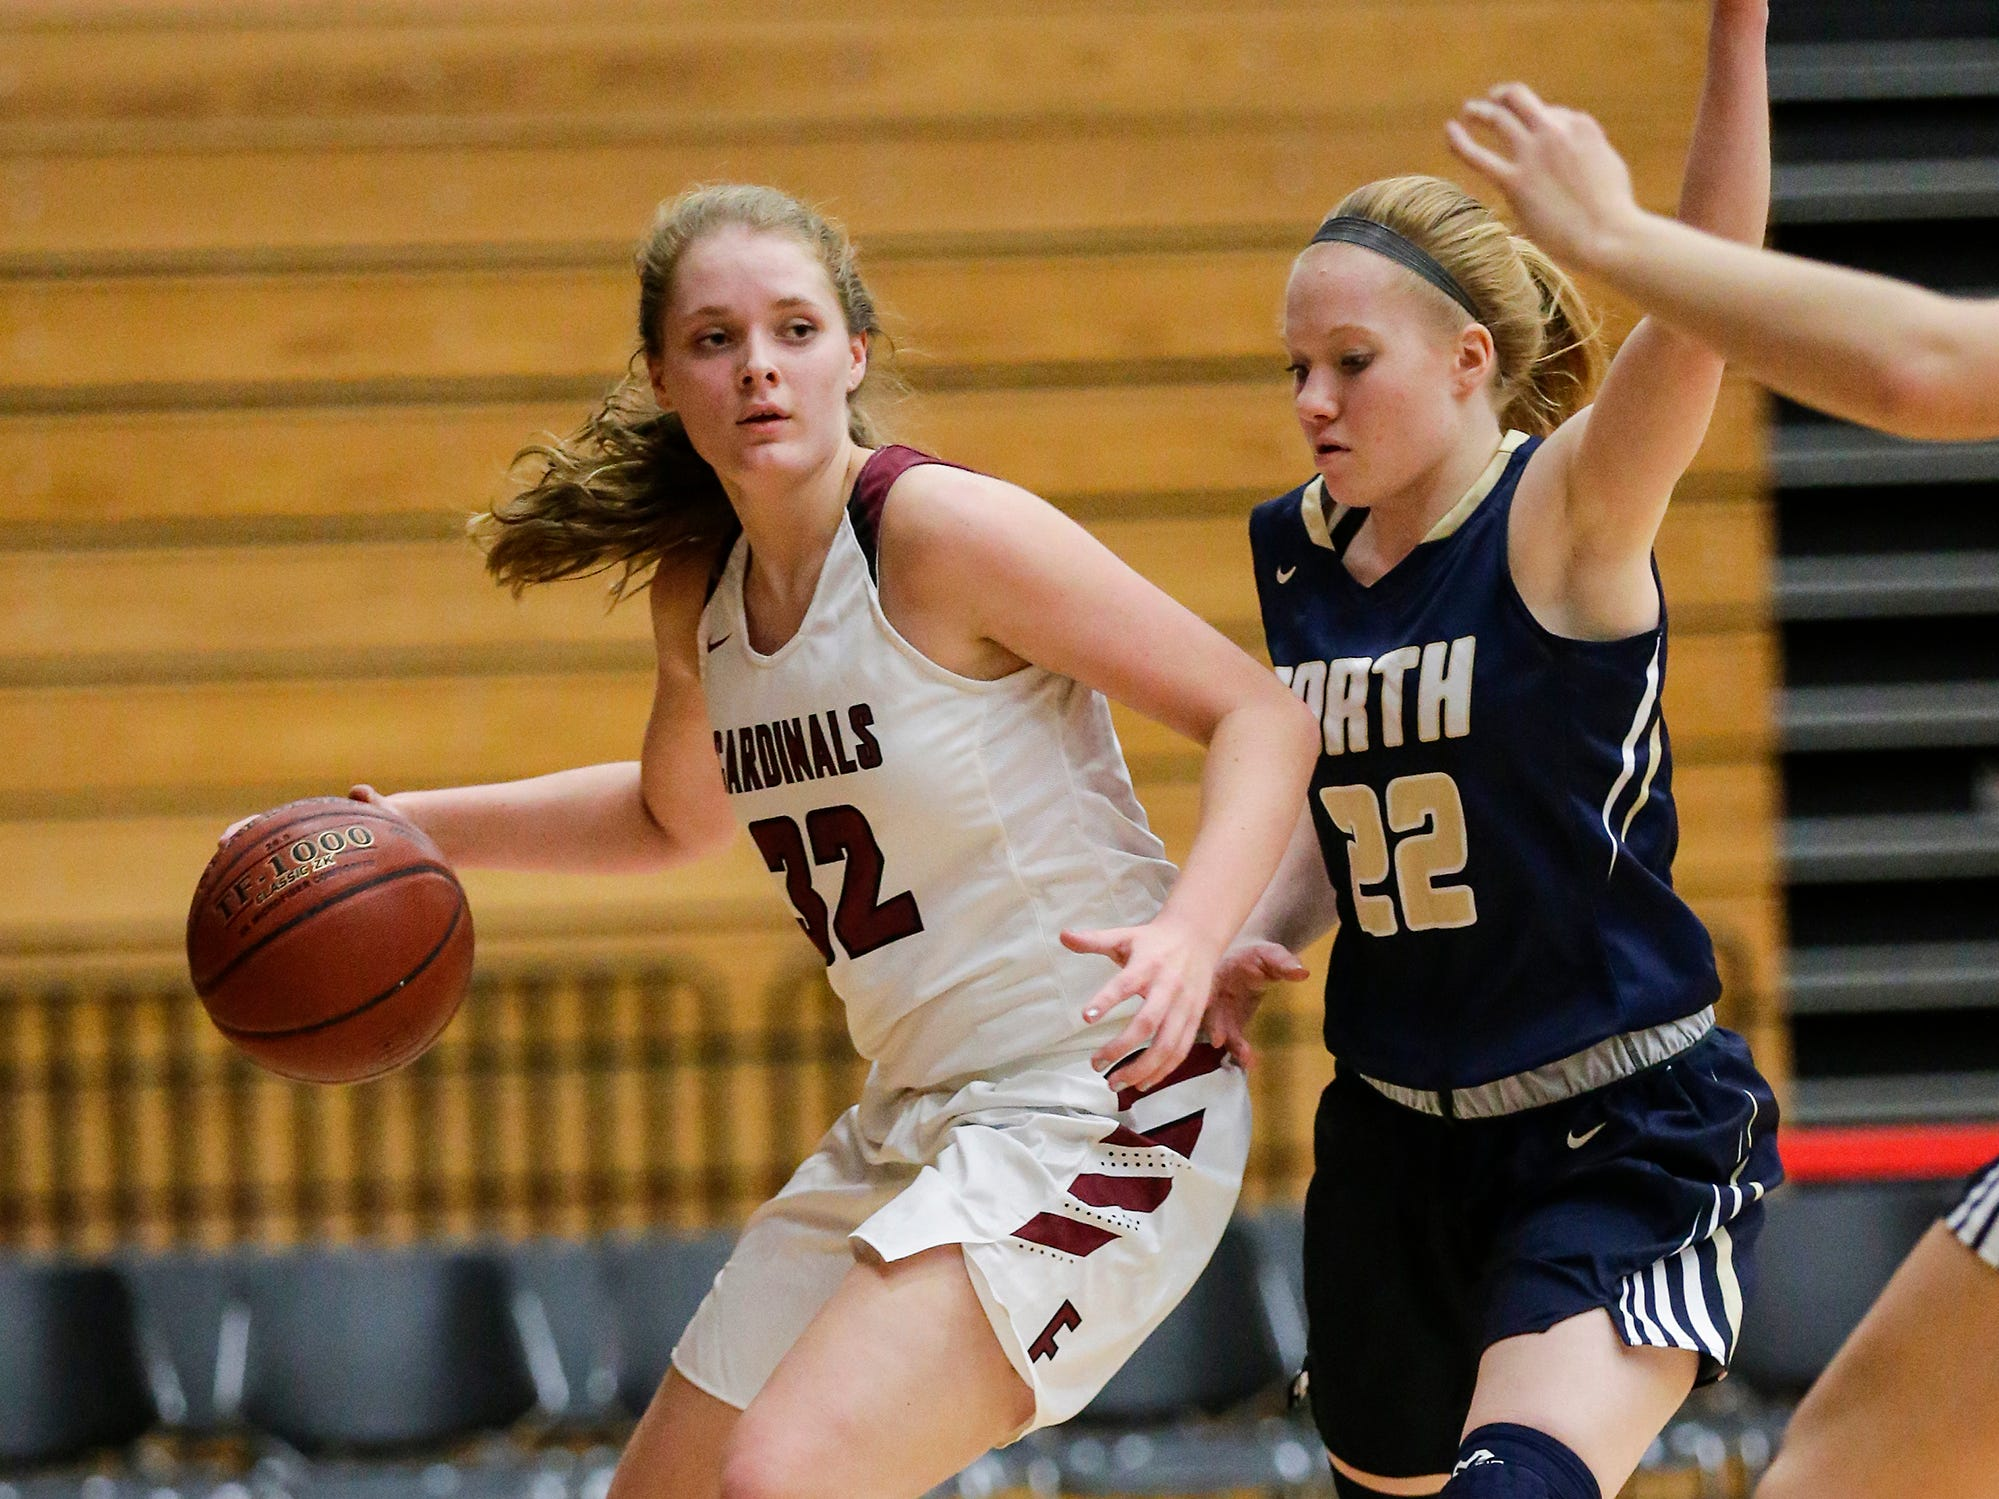 Fond du Lac High School girls basketball's Breanna Miller works her way past Appleton North High School's Kayla Schroeder during their game Tuesday, Dec. 4, 2018 in Fond du Lac, Wisconsin.